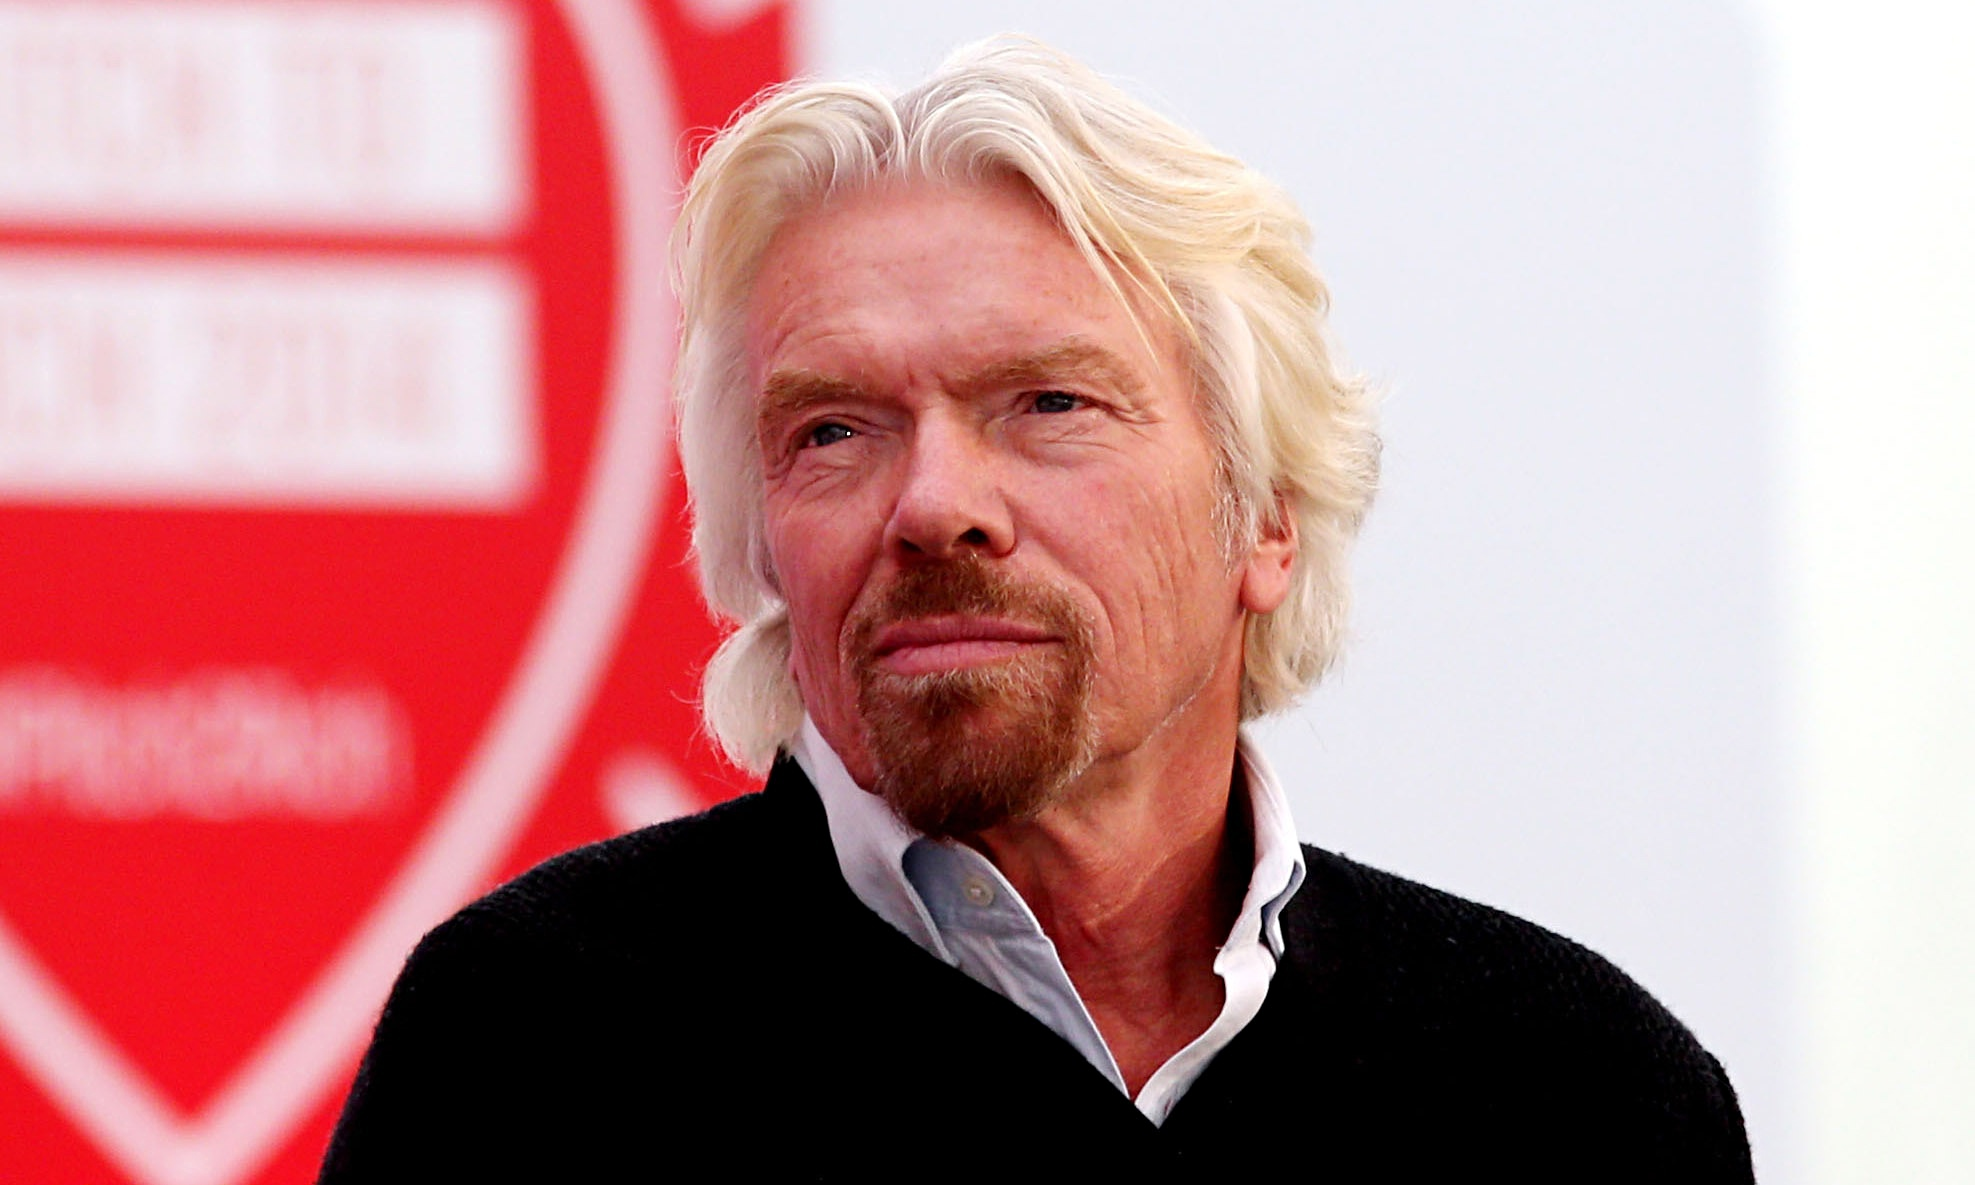 richard branson 127 quotes from richard branson: 'if somebody offers you an amazing opportunity but you are not sure you can do it, say yes – then learn how to do it later', 'life is a helluva lot more fun if you say yes rather than no', and 'respect is how to treat everyone, not just those you want to impress.